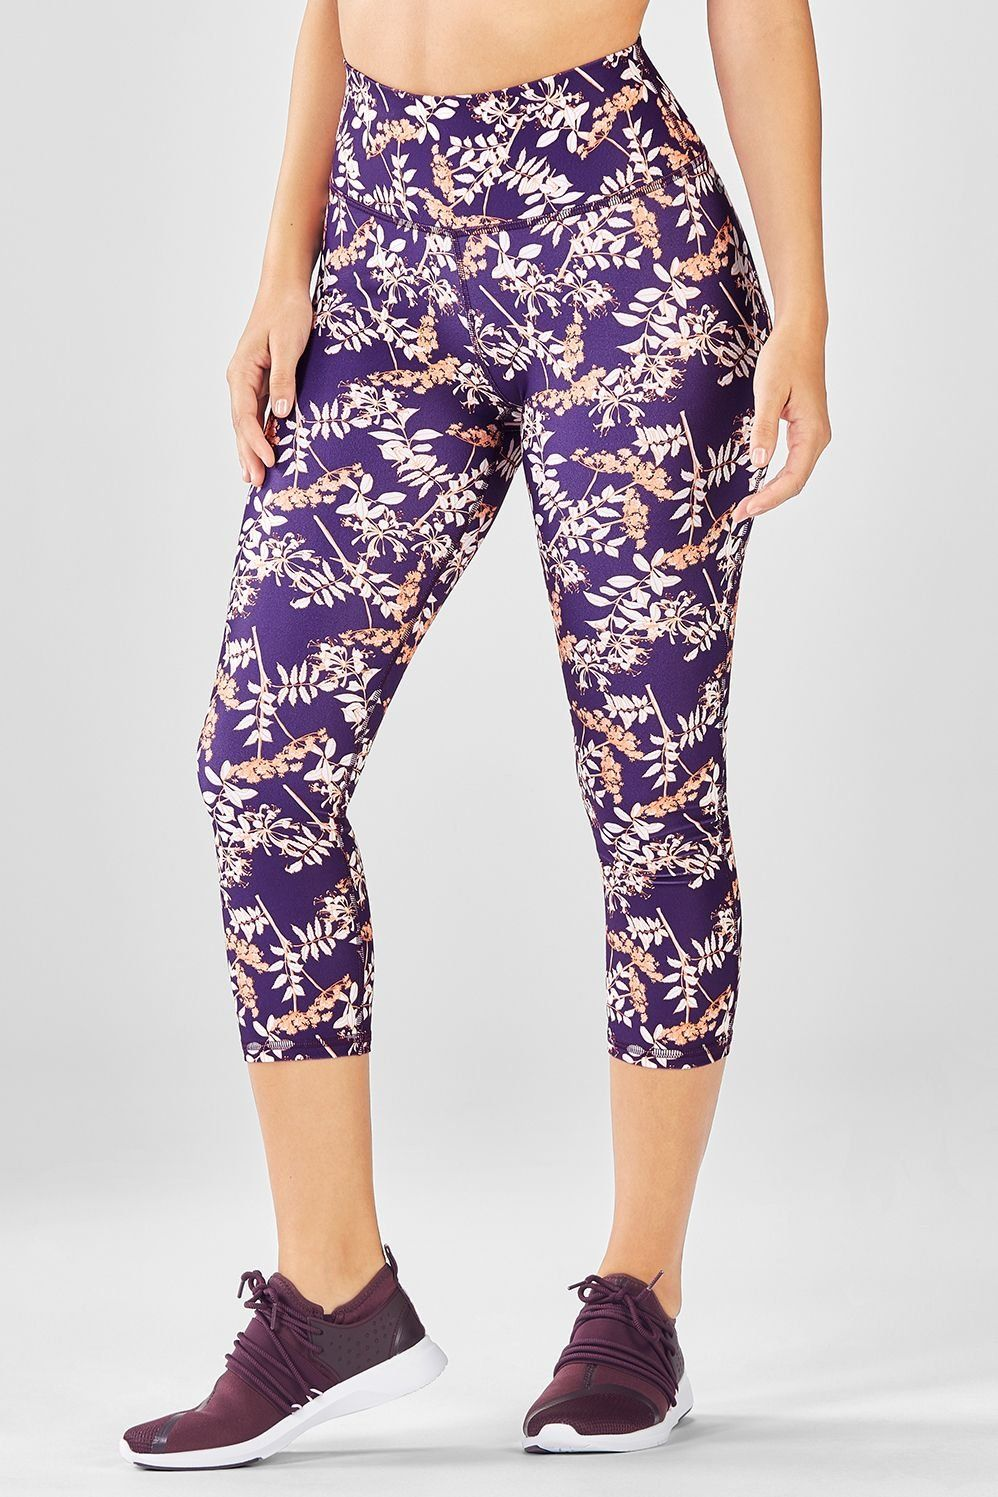 3a7004c20e9a8 High-Waisted Printed PowerHold® Crop in 2019 | The Best Fabletics ...